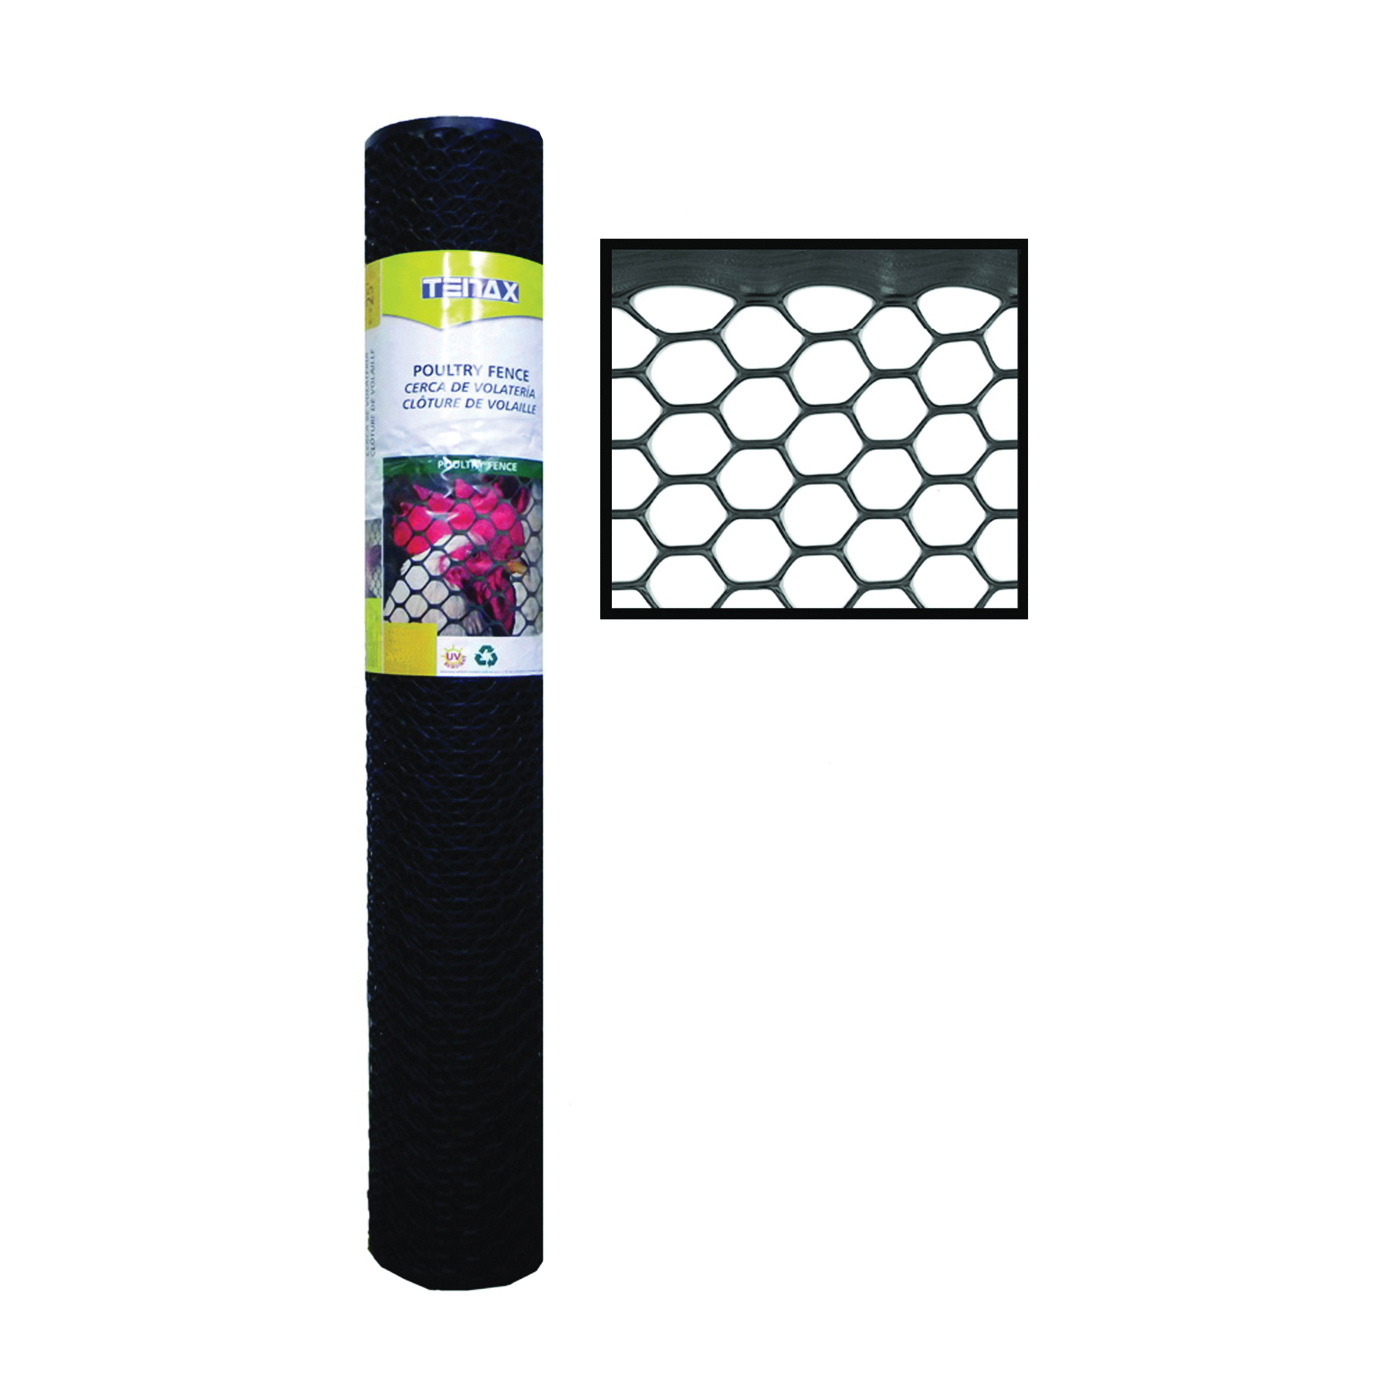 Picture of TENAX 72120346 Poultry Fence, 50 ft L, 4 ft W, 3/4 x 3/4 in Mesh, Plastic, Black